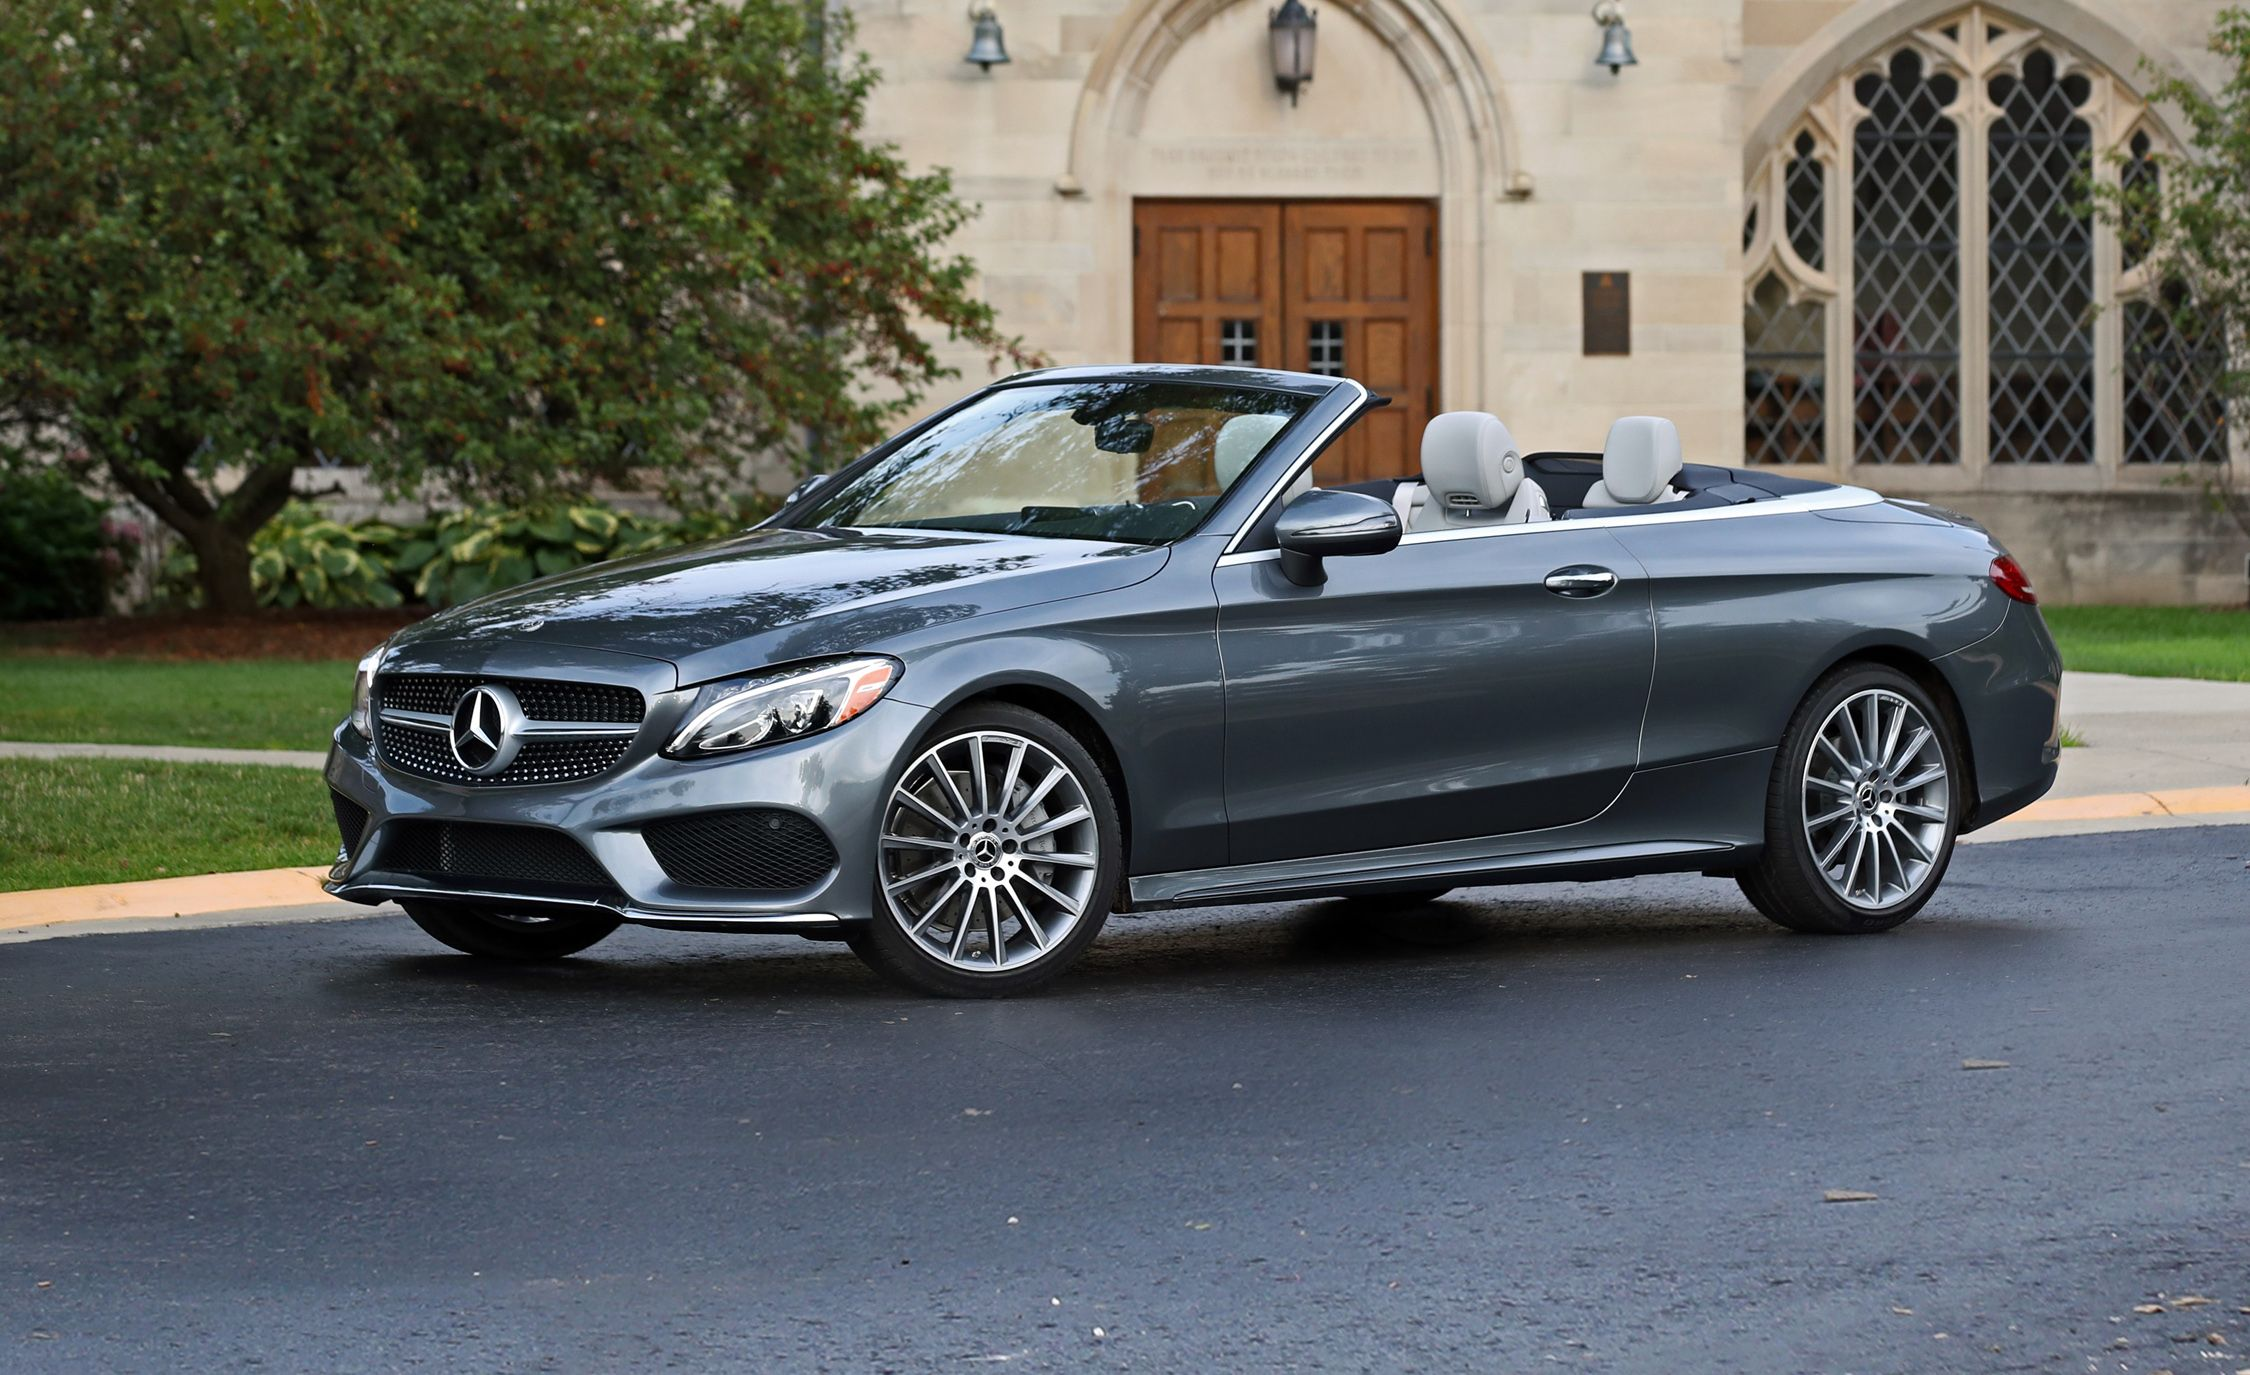 Review 300c Luxury >> 2018 Mercedes-Benz C300 Cabriolet Test   Review   Car and Driver